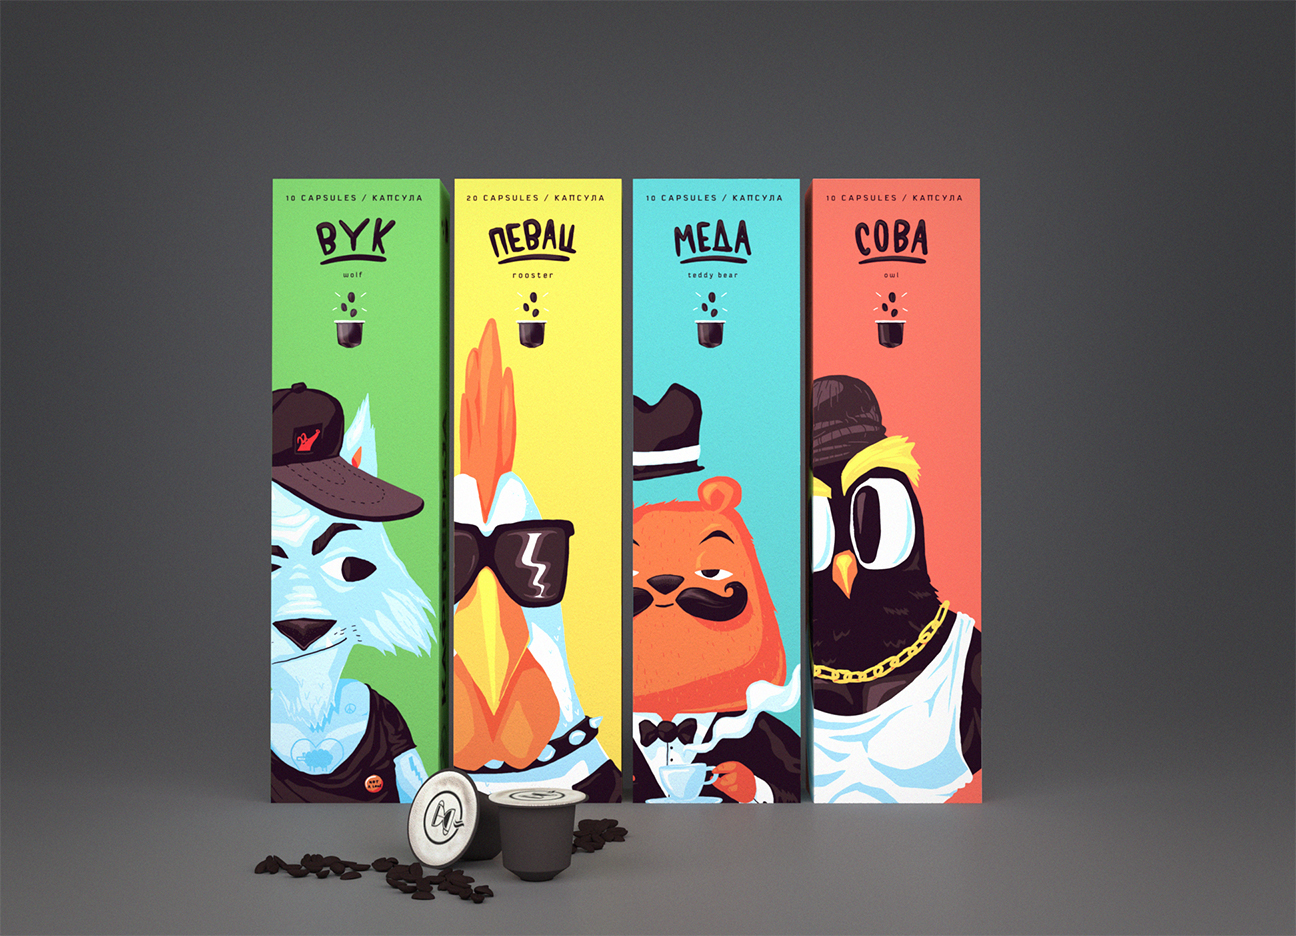 Kafeterija capsules packaging design by Linnch